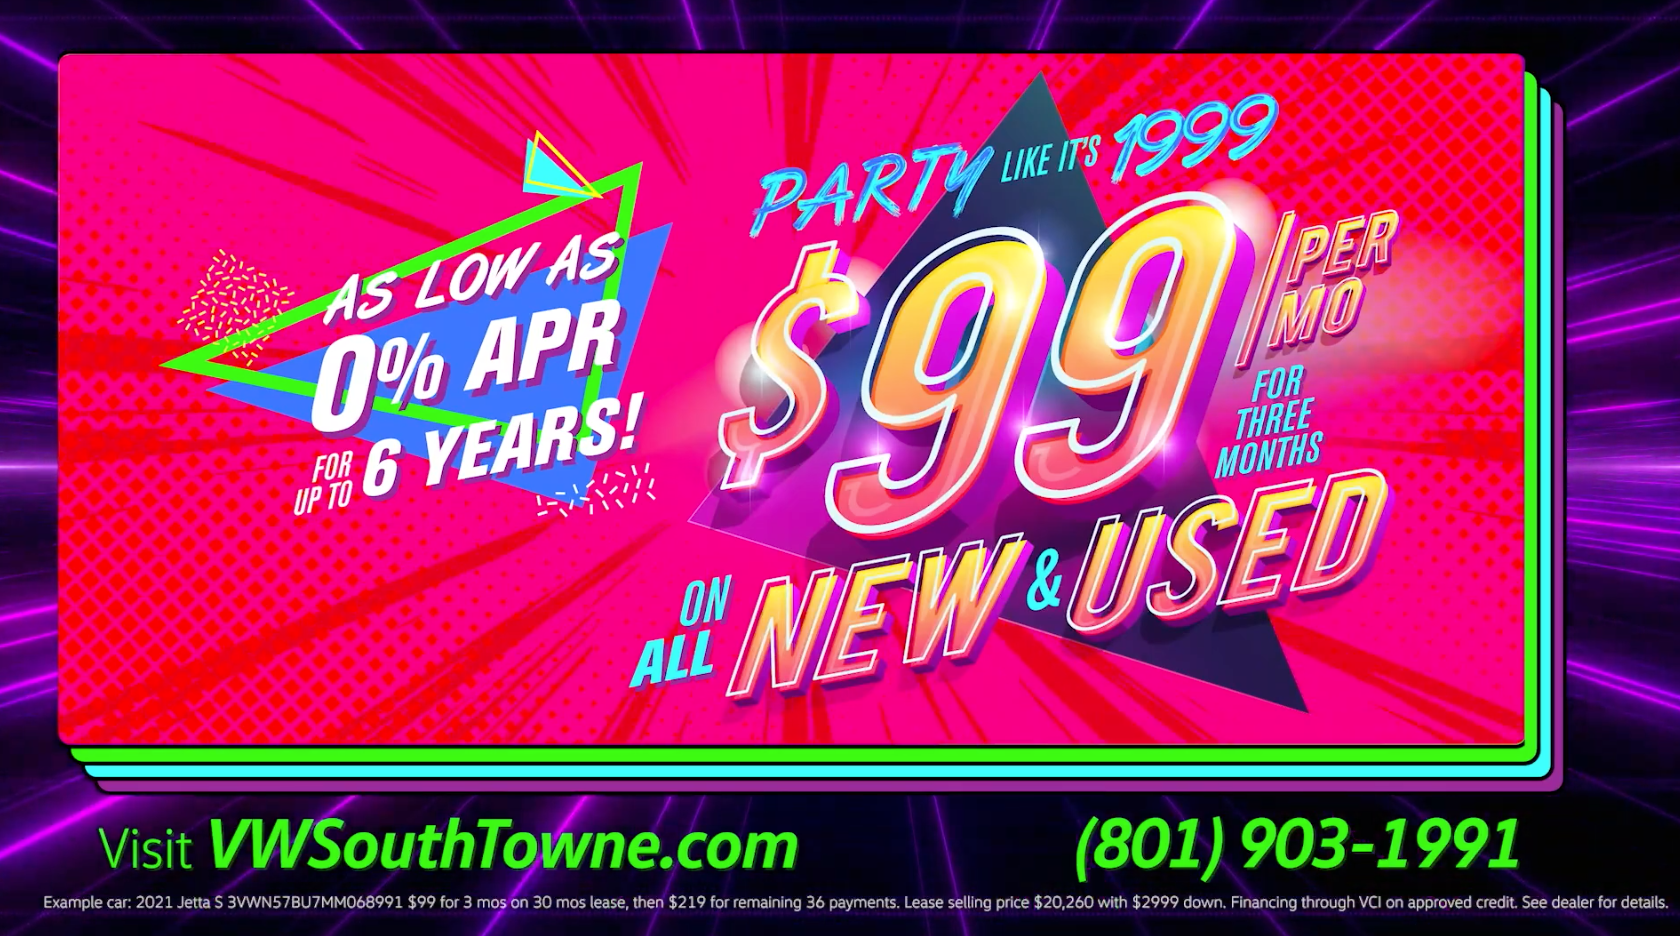 Party like it's 1999 at VW SouthTowne with $99 payments!